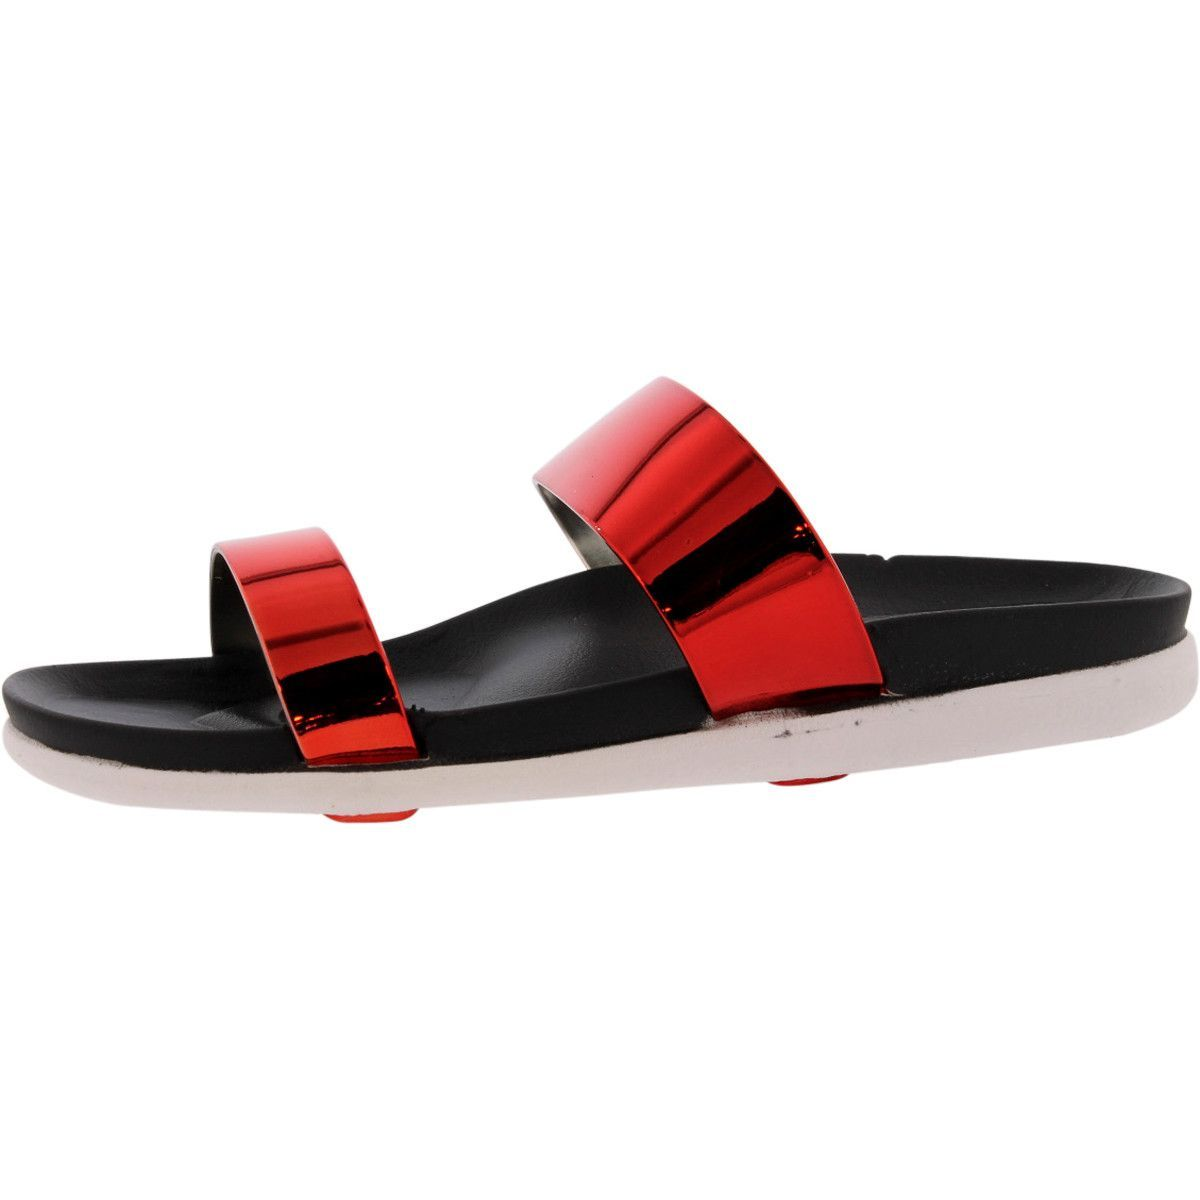 Refresh - Women's Jelly Metal Sandals - Red